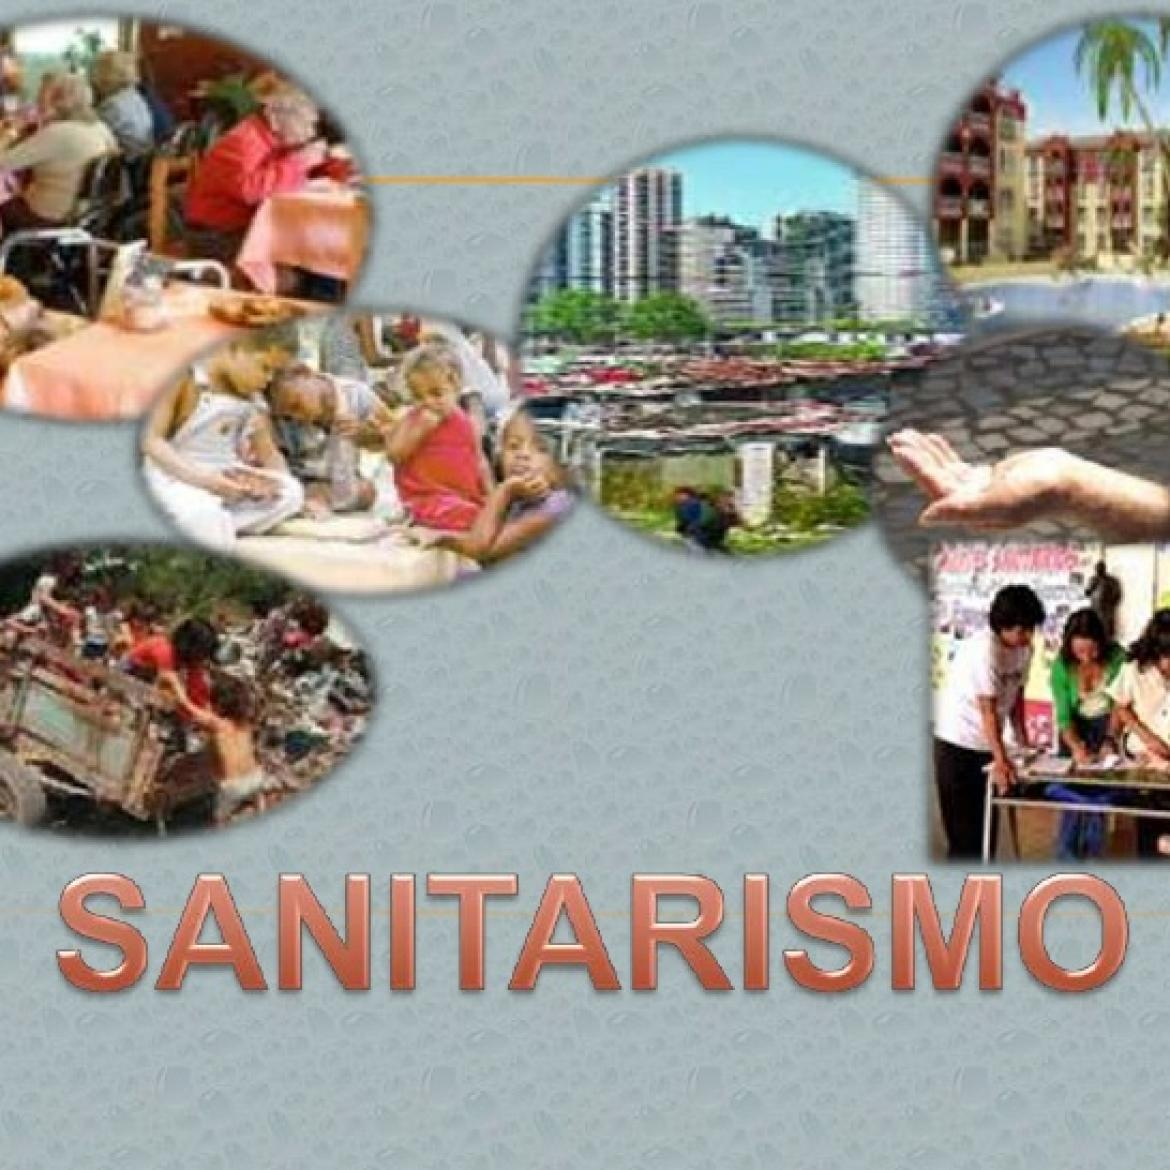 http://www.4newsmagazine.com.br/sites/default/files/sociedad-y-sanitarismo-5-1-728.jpg